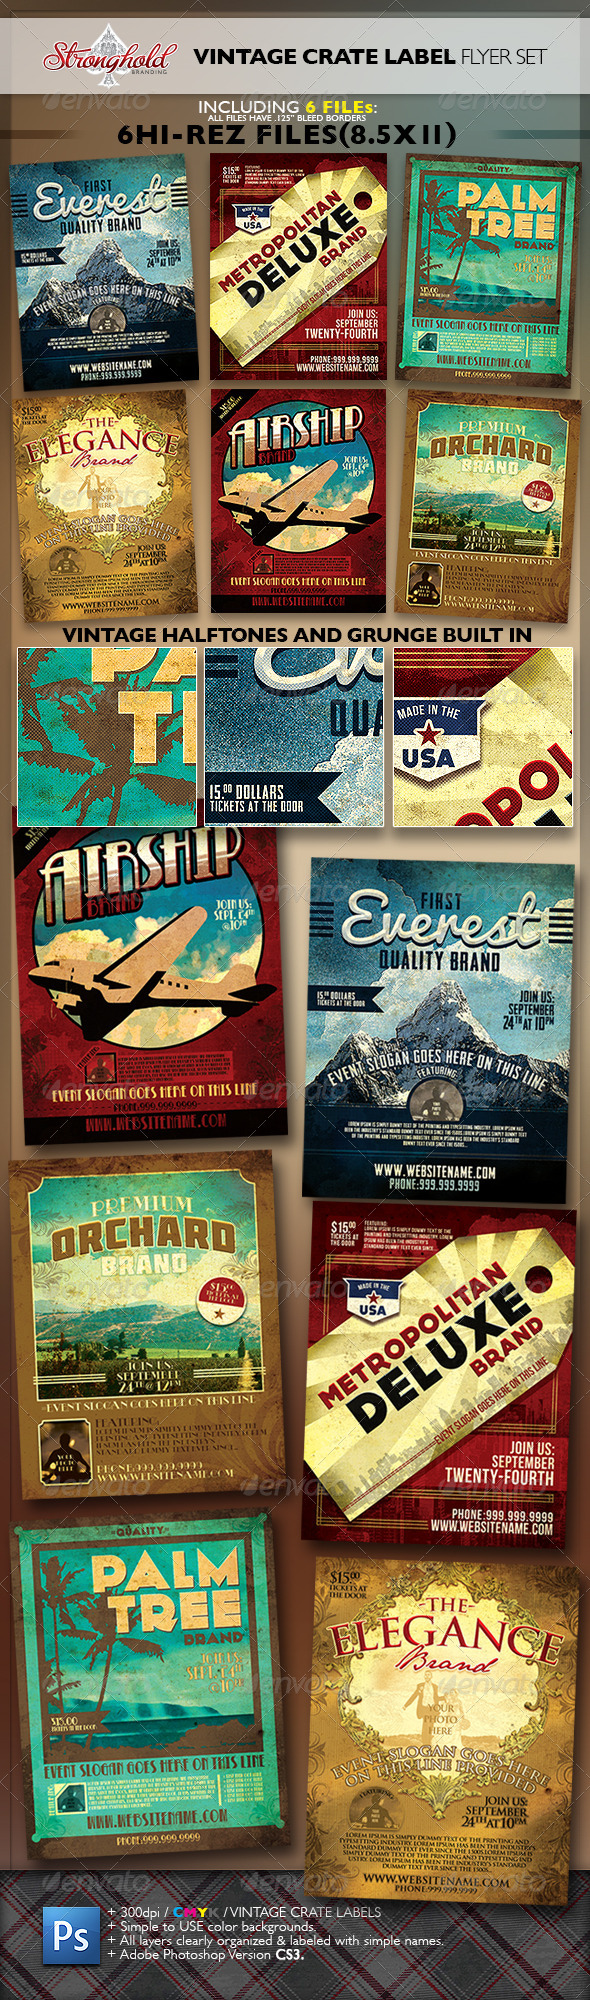 Vintage Fruit Crate Label Flyer Template Set